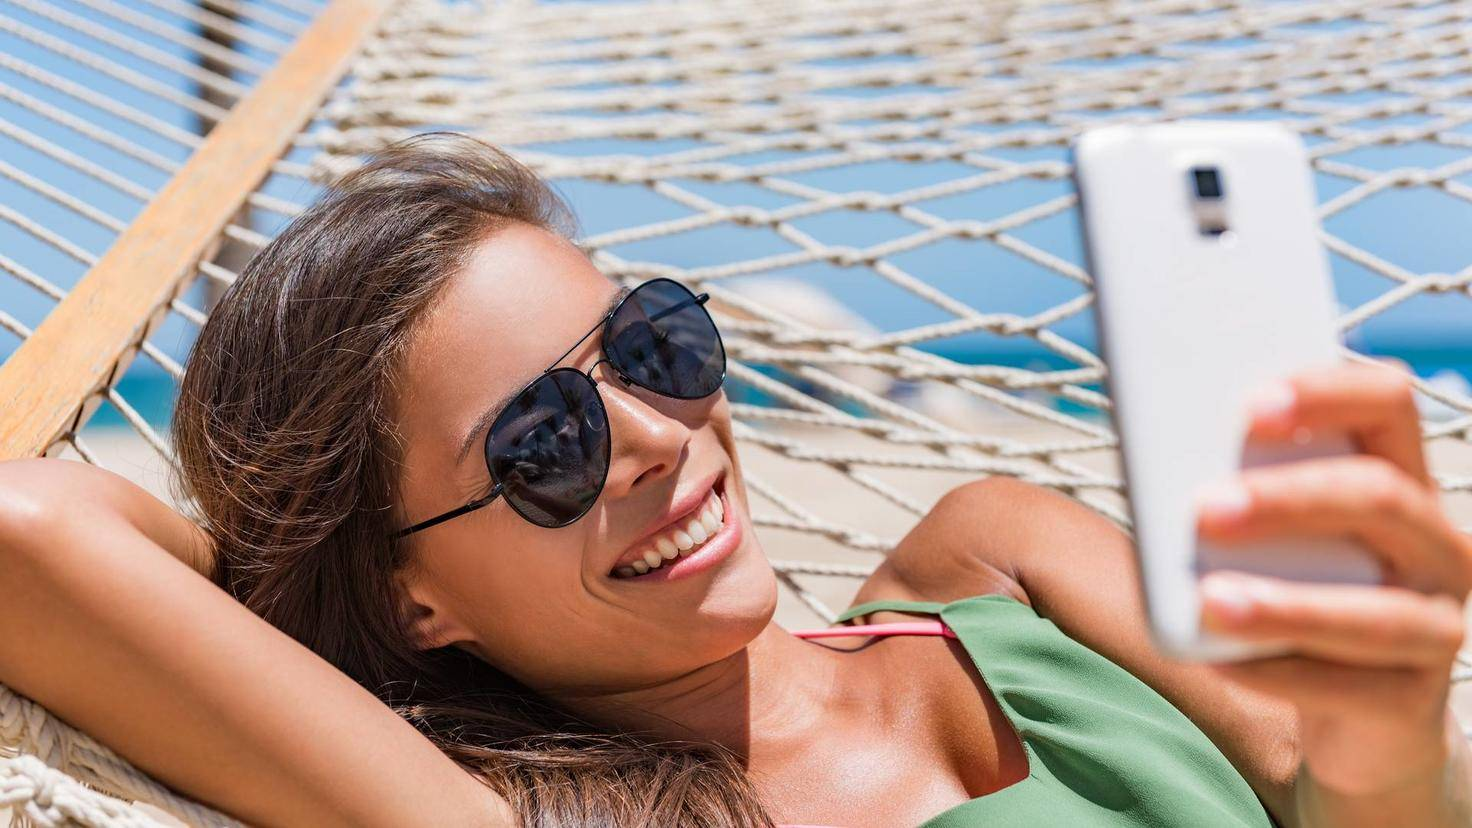 Vacation woman using smart phone taking smartphone selfie. Girl relaxing on beach hammock sun tanning in sunglasses smiling using cellphone to take pictures and text sms messages.